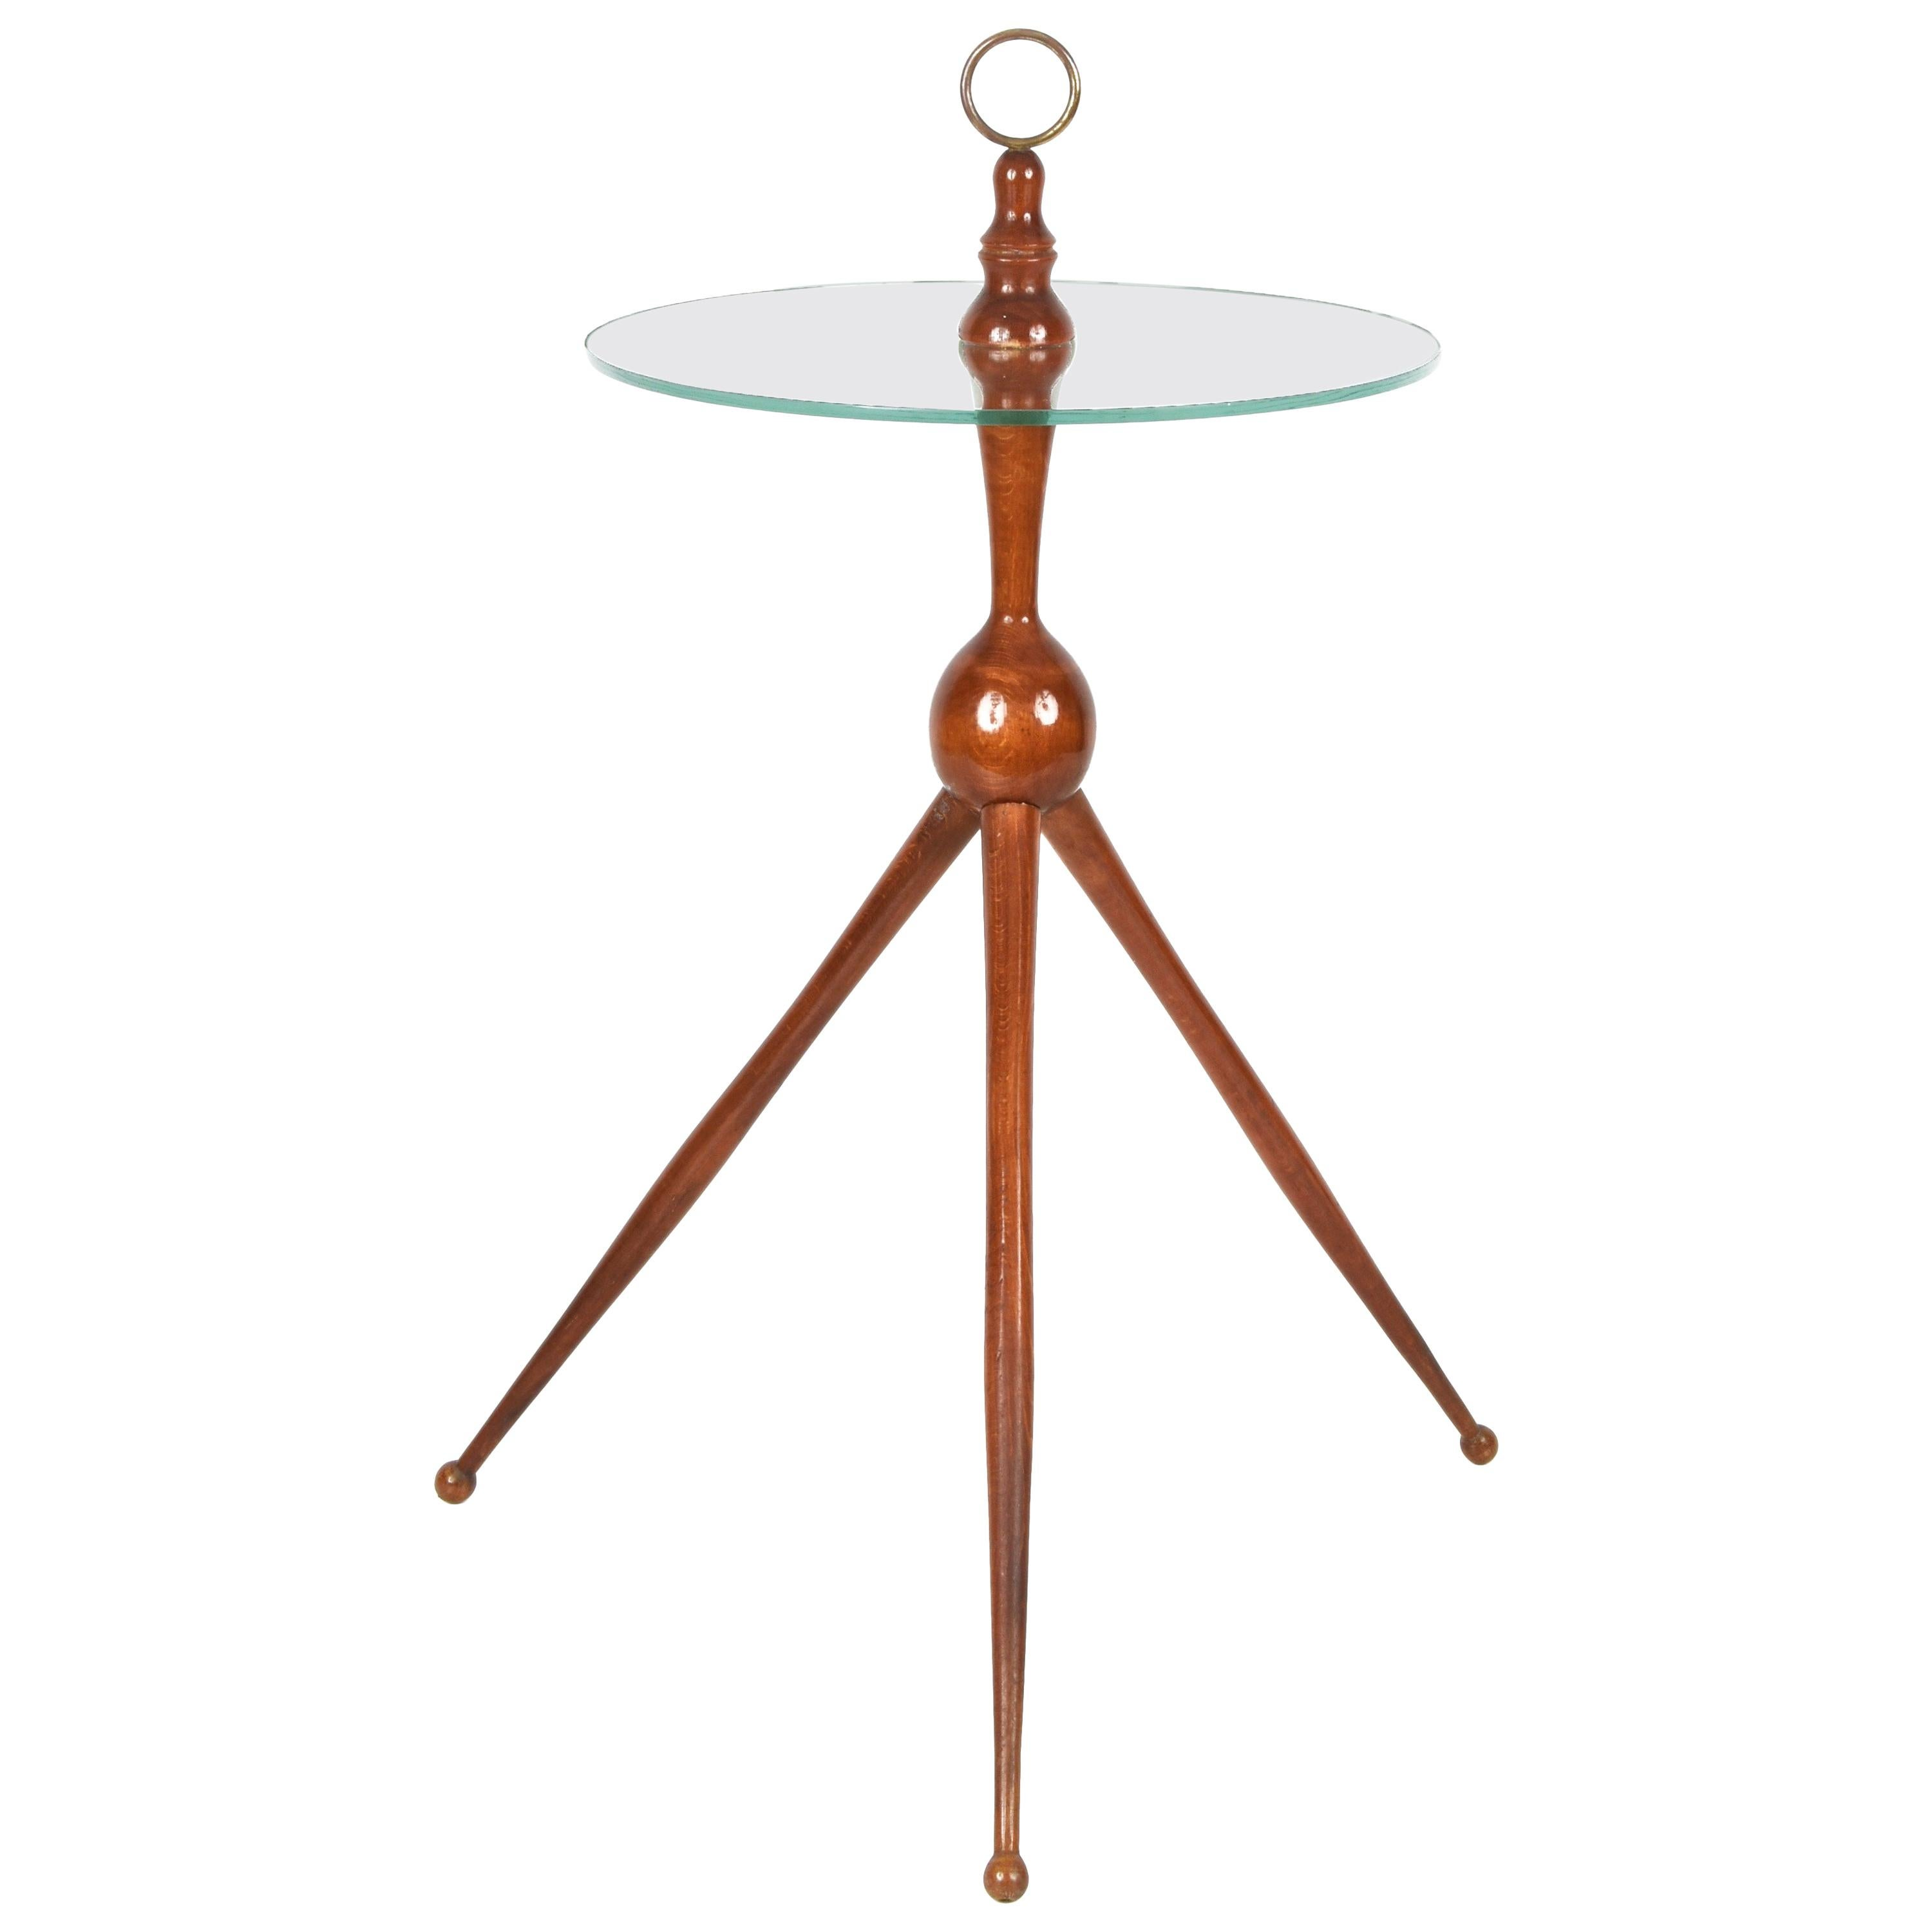 Cesare Lacca Midcentury Wood and Glass Tripod Italian Coffee Table, 1950s